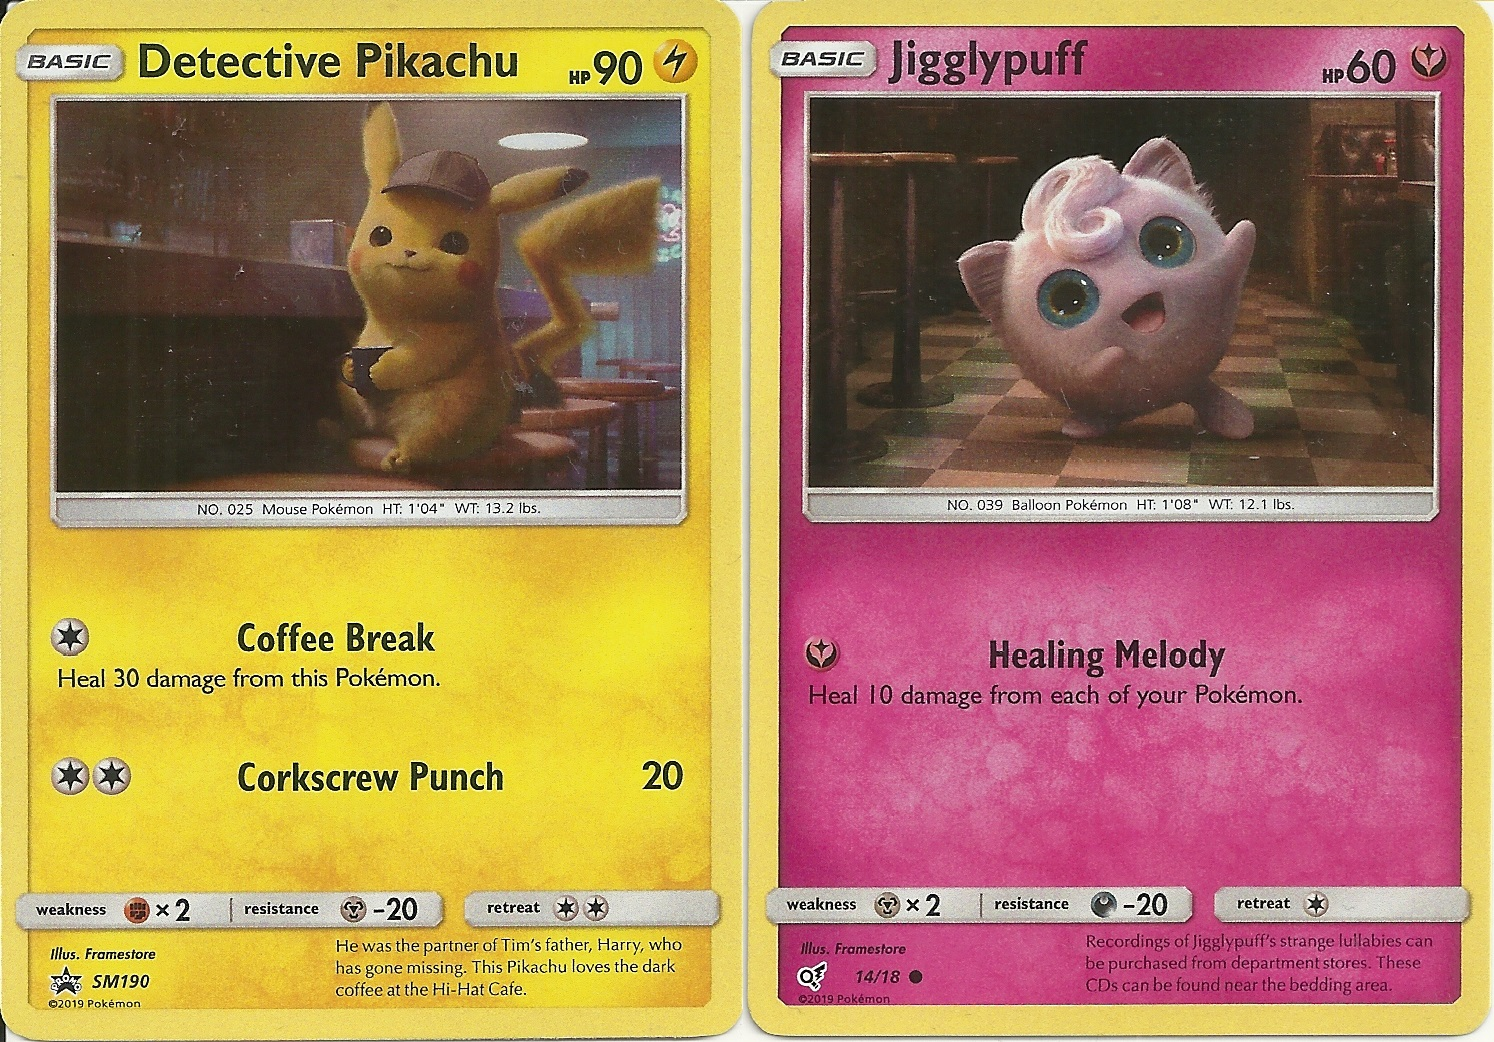 Detective Pikachu Mewtwo Gx Case File Pokemon Tcg Box Shot Not Taken